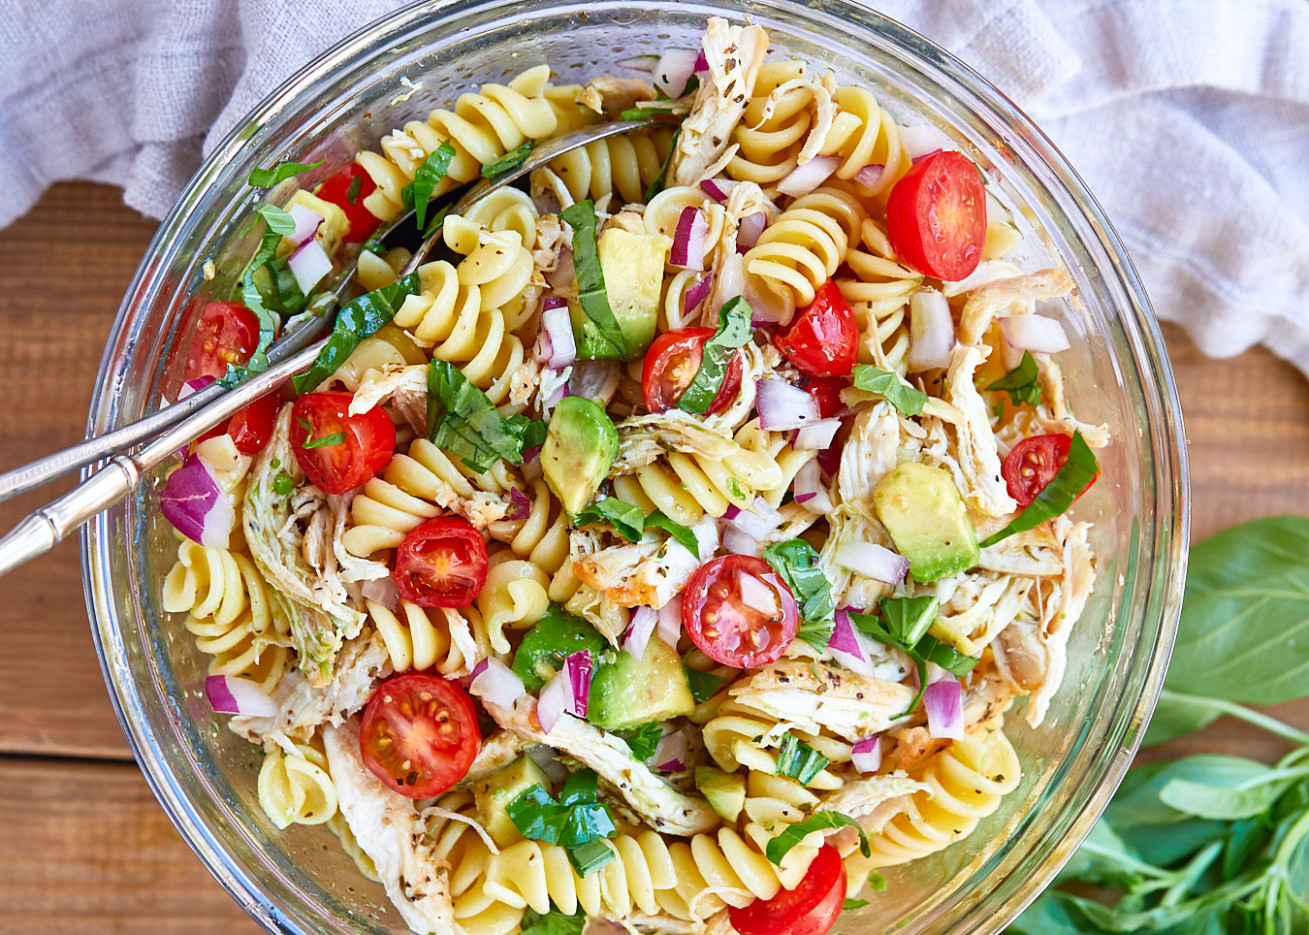 Healthy Chicken Pasta Salad with Avocado, Tomato, and Basil  - healthy recipes salads